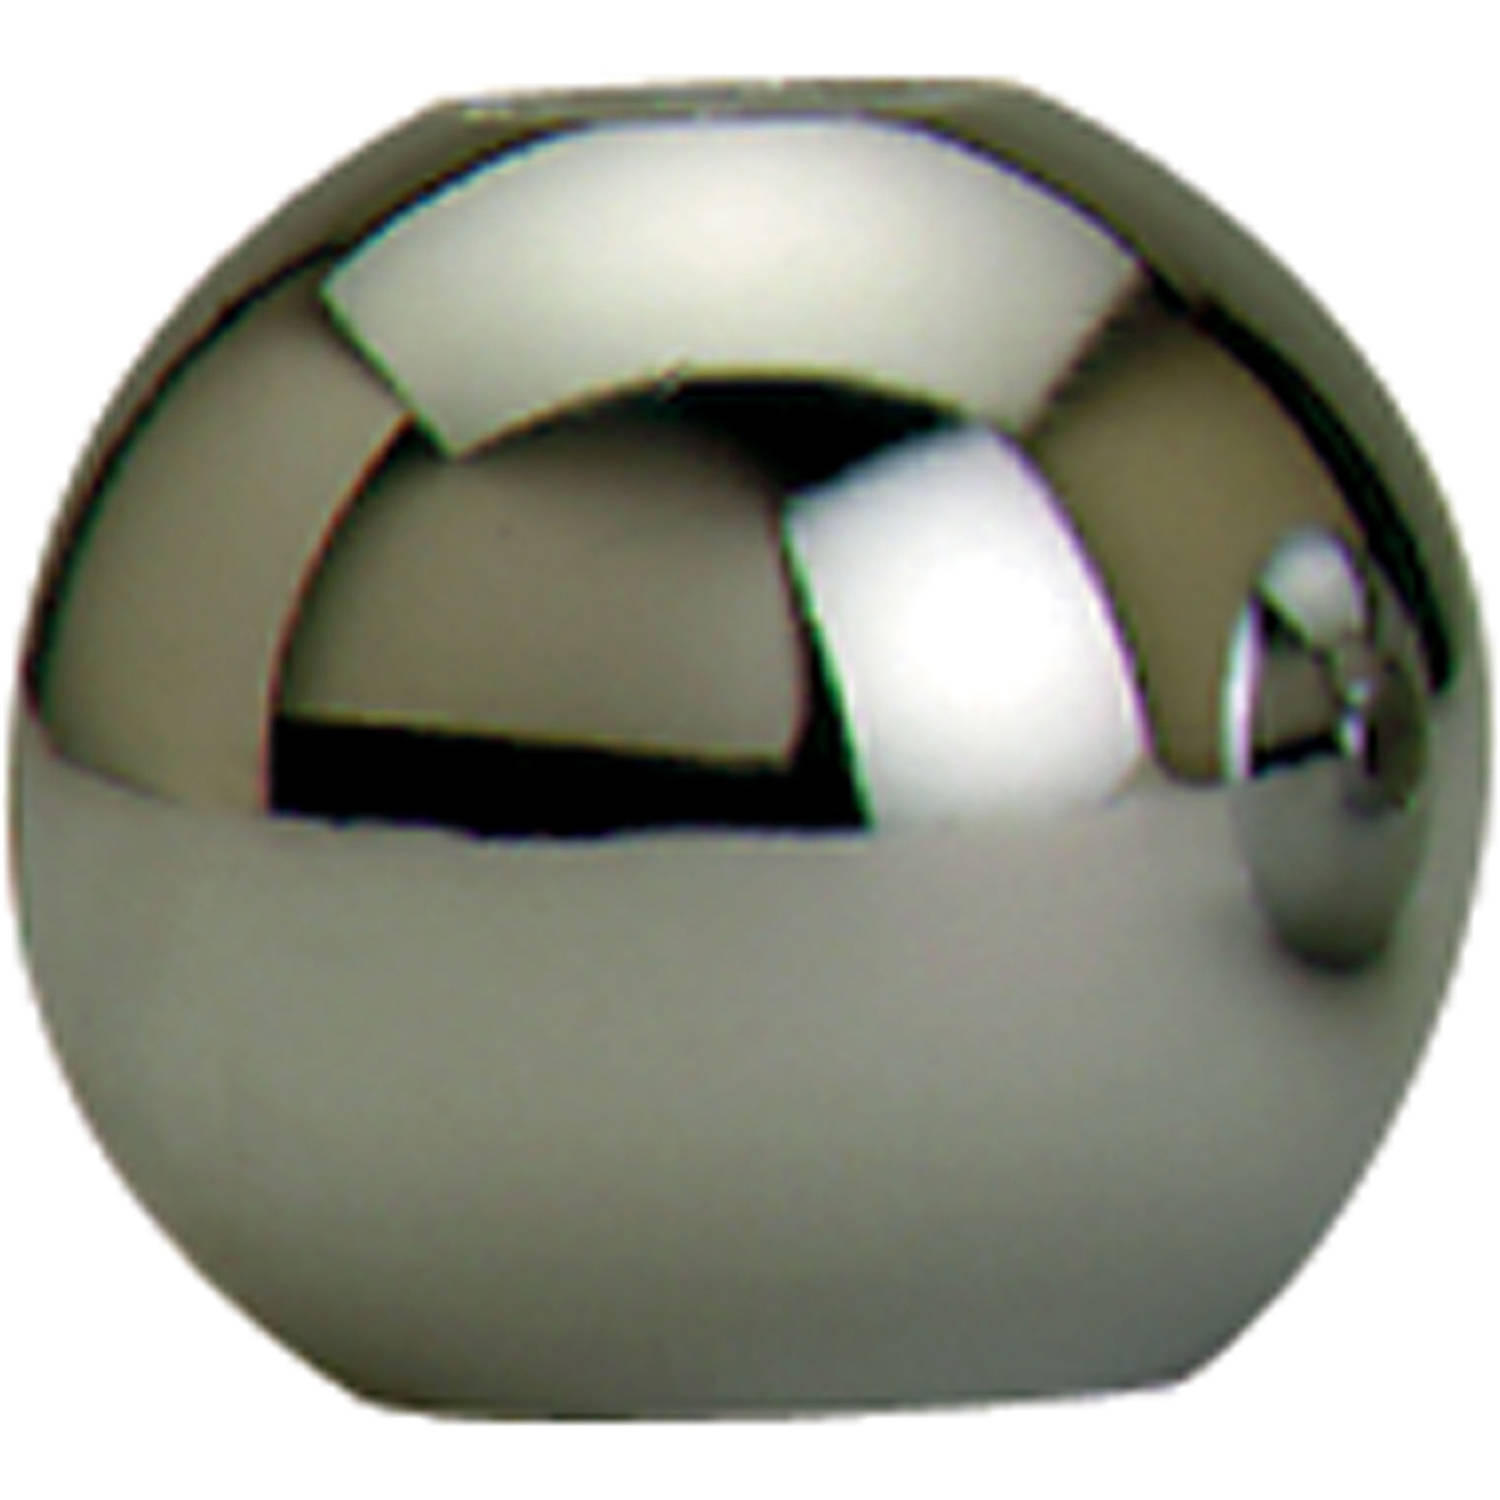 Convert-A-Ball Nickel-Plated Replacement Ball